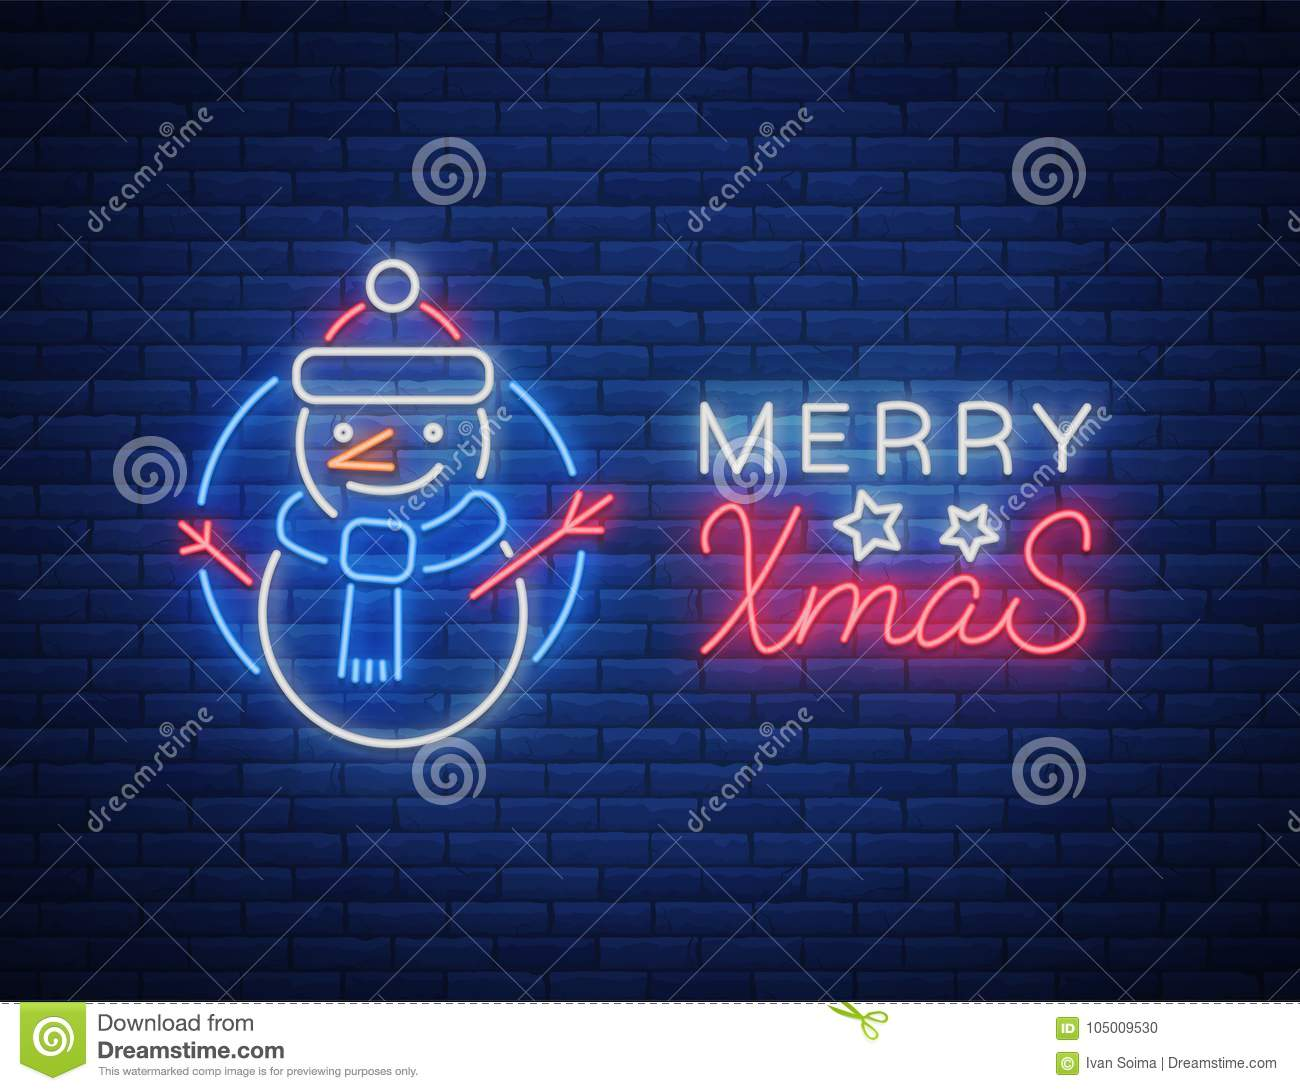 Christmas Done Bright.Merry Christmas Welcome Card Done In Neon Style Isolated